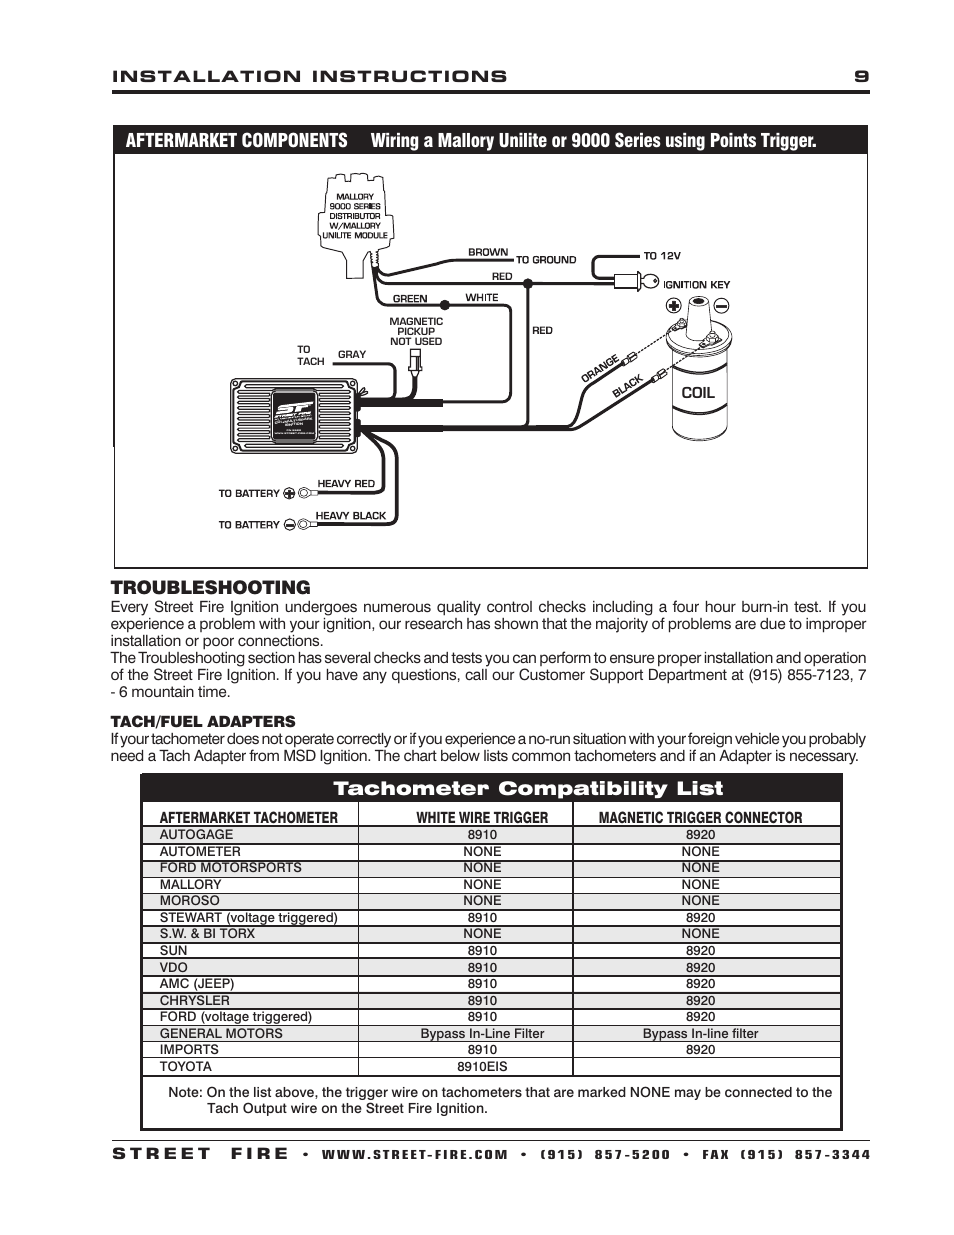 Msd Street Fire Ignition Wiring Diagram Schematic Diagrams 6tn Trusted U2022 Streetfire 8876